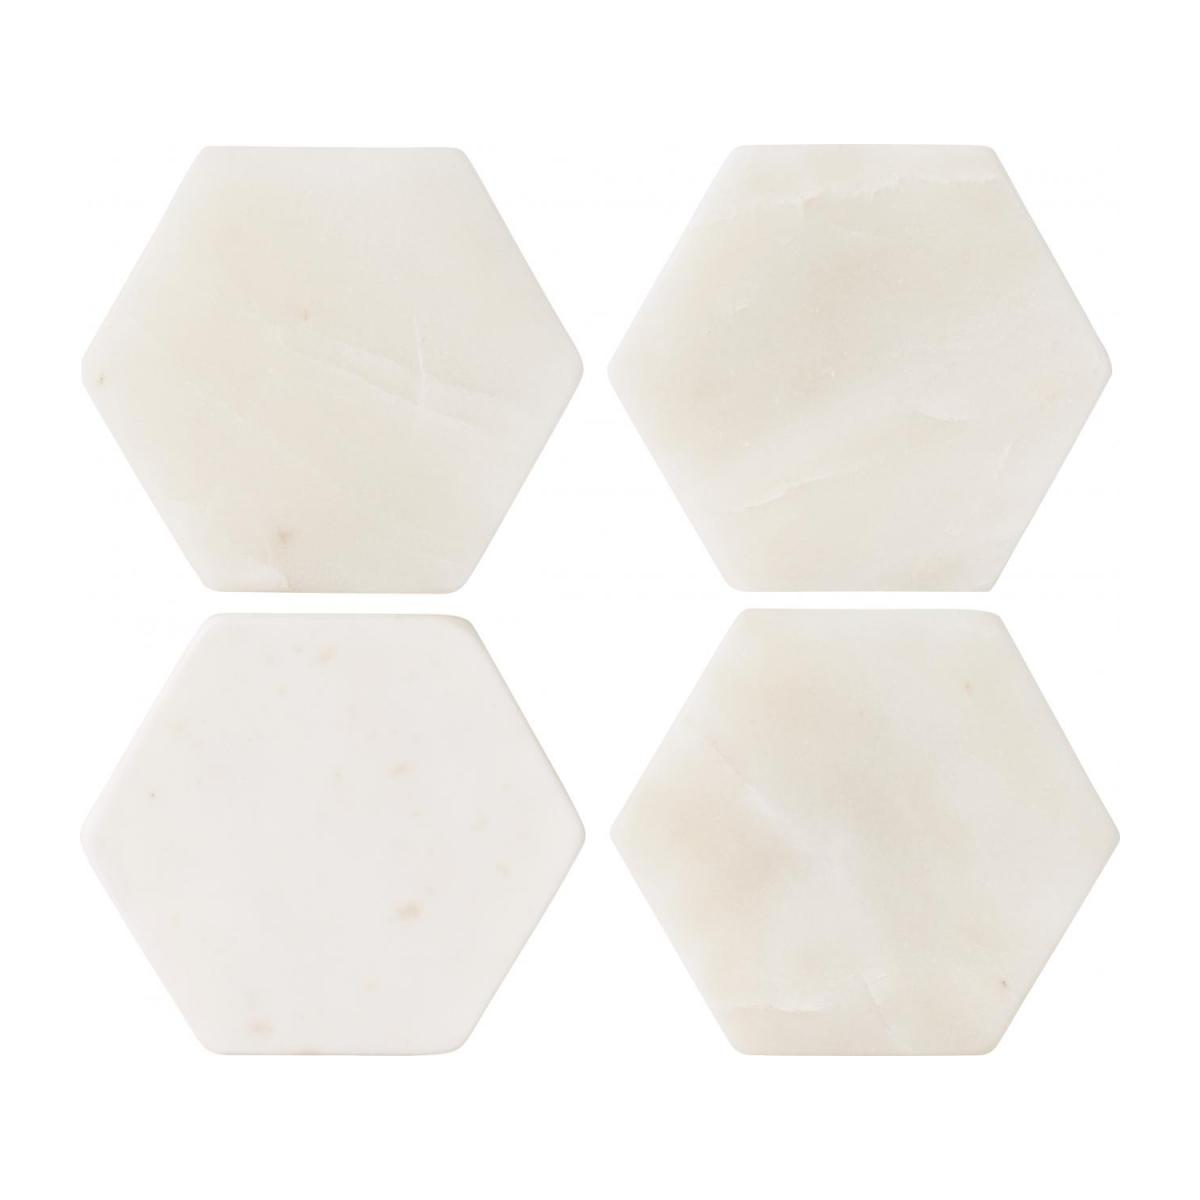 Set of 4 coasters made of marble n°2